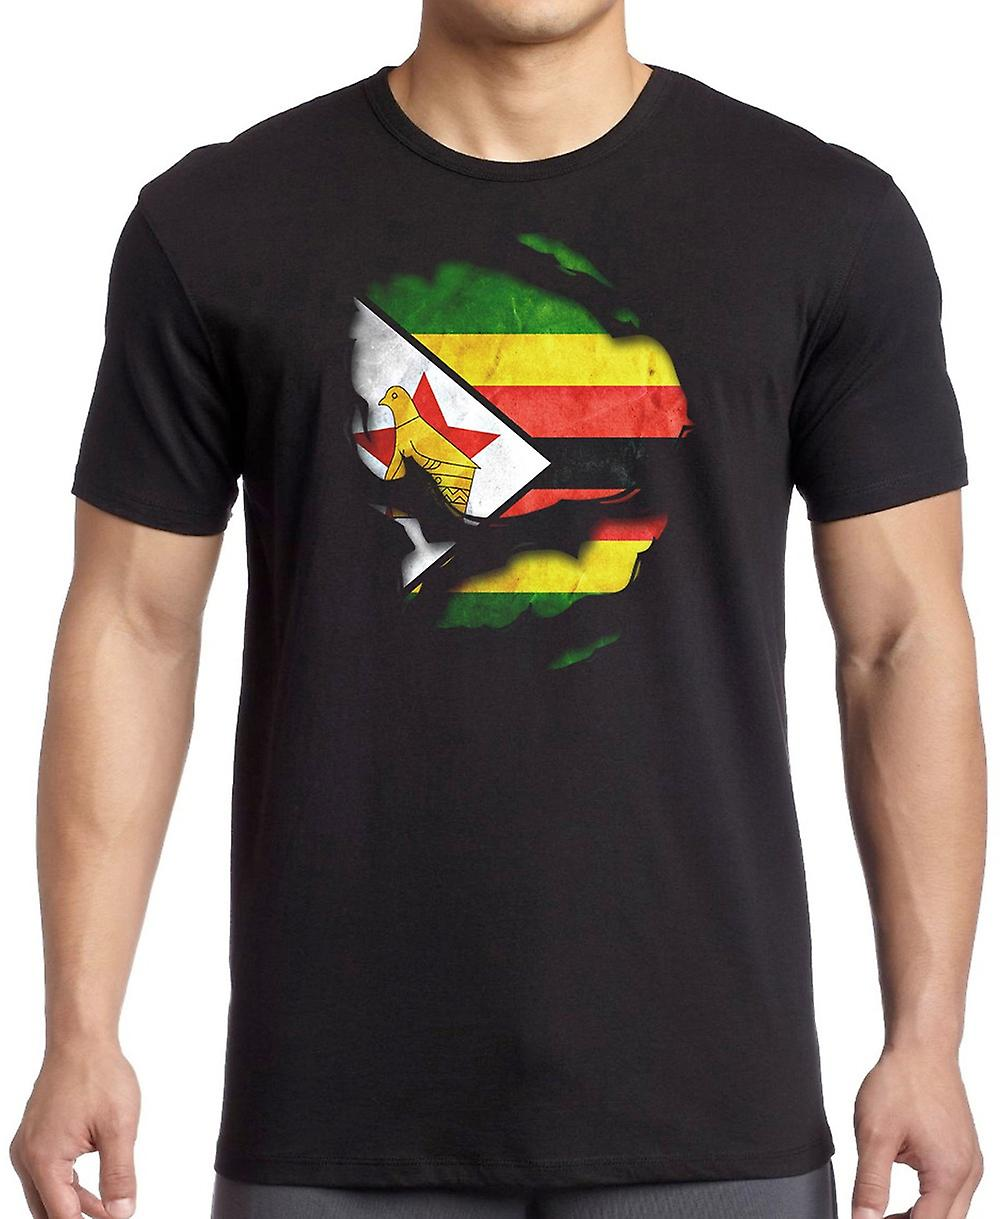 Zimbabwe Ripped Effect Under Shirt Women T Shirt